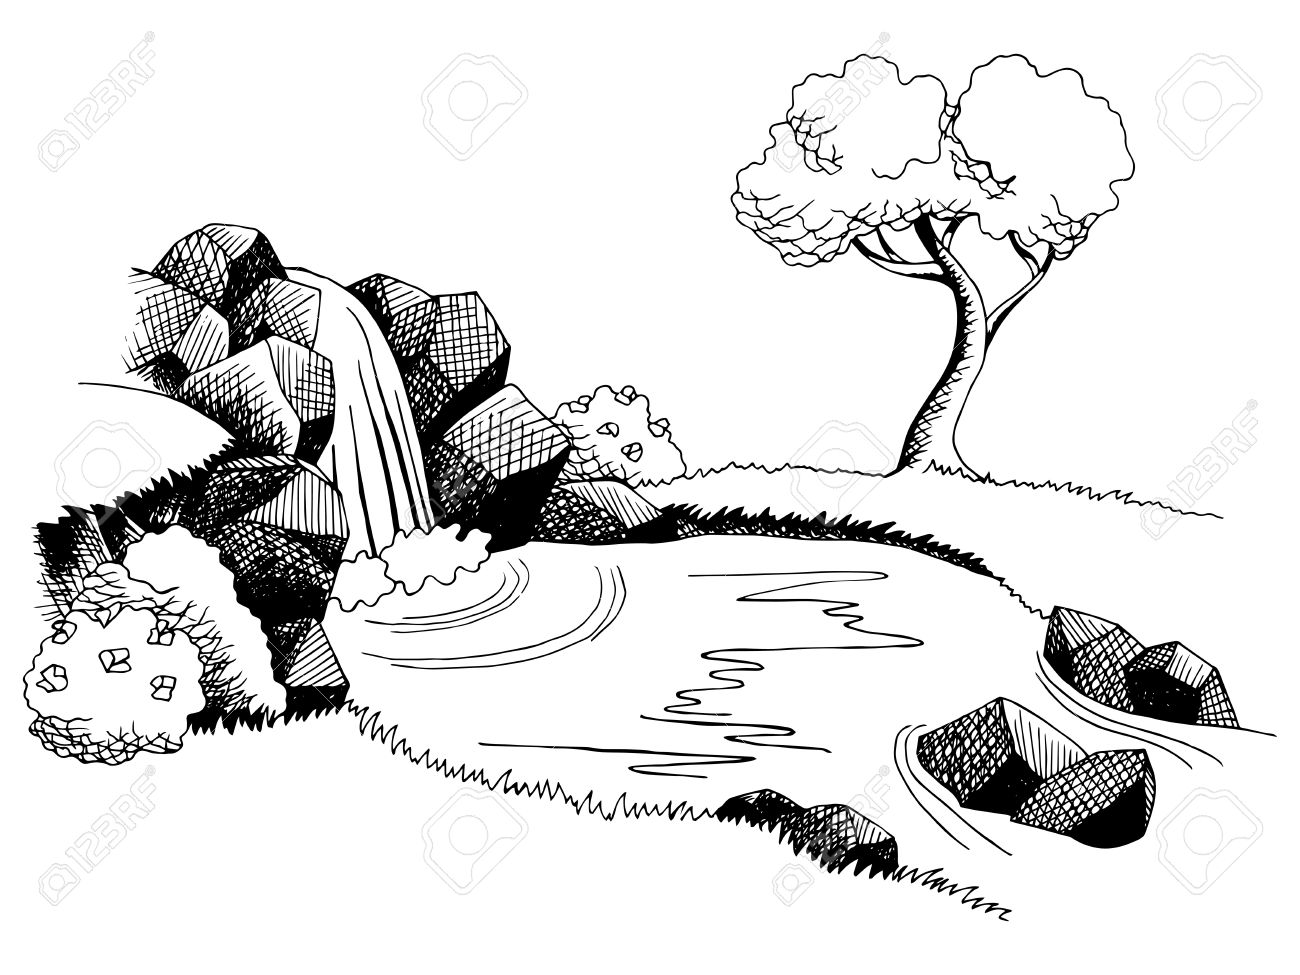 591 Waterfall free clipart.